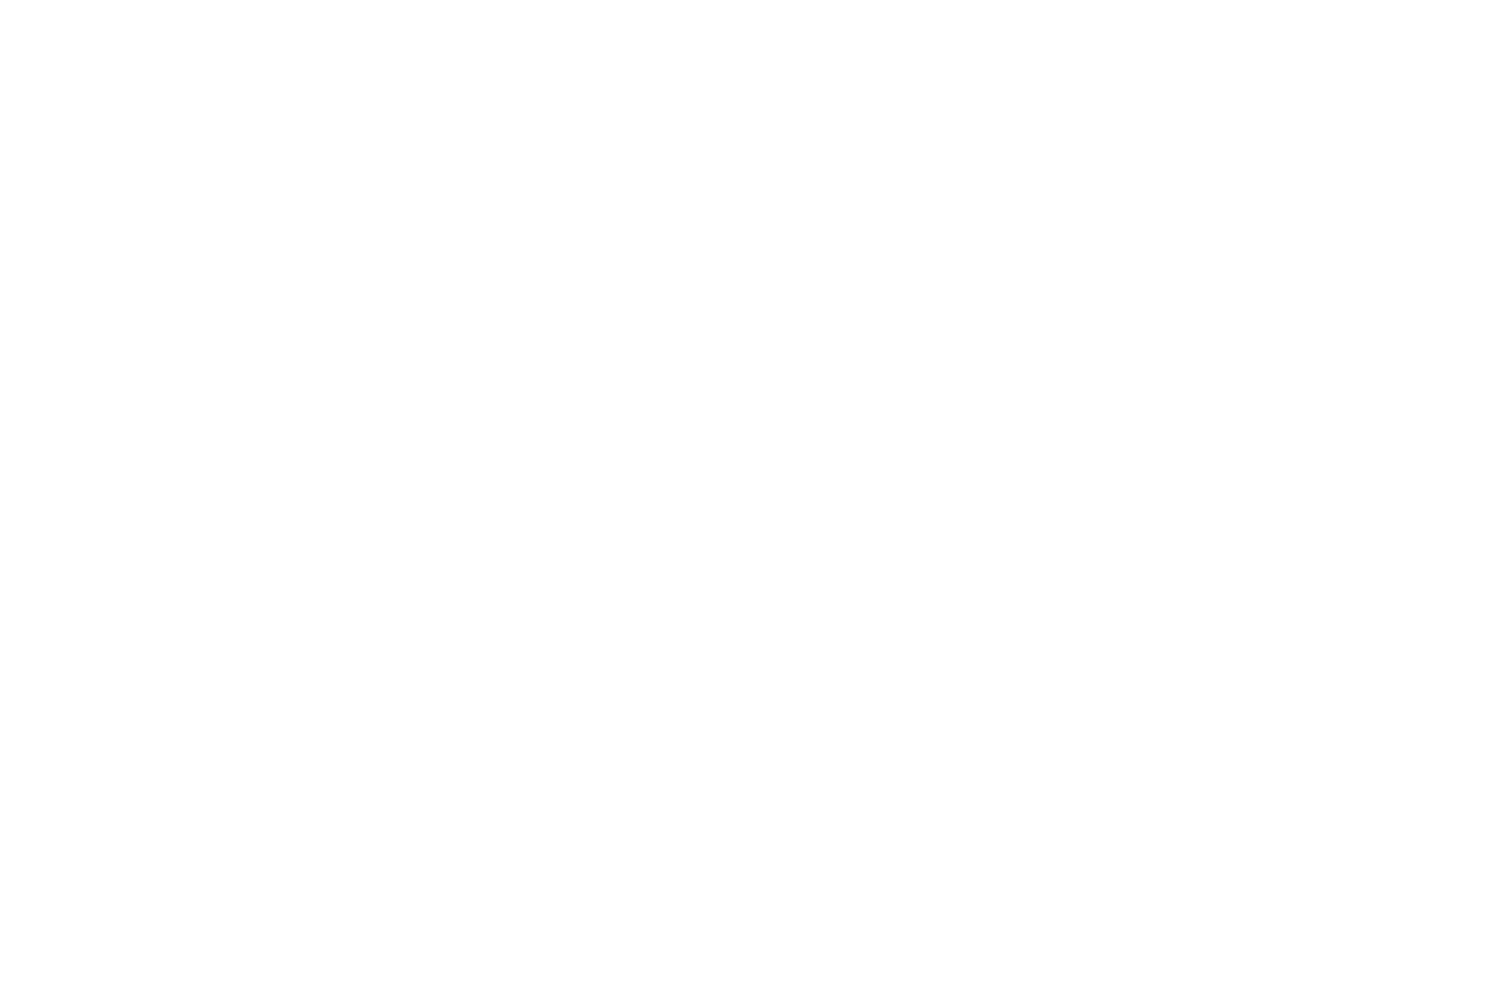 The Garden City Project